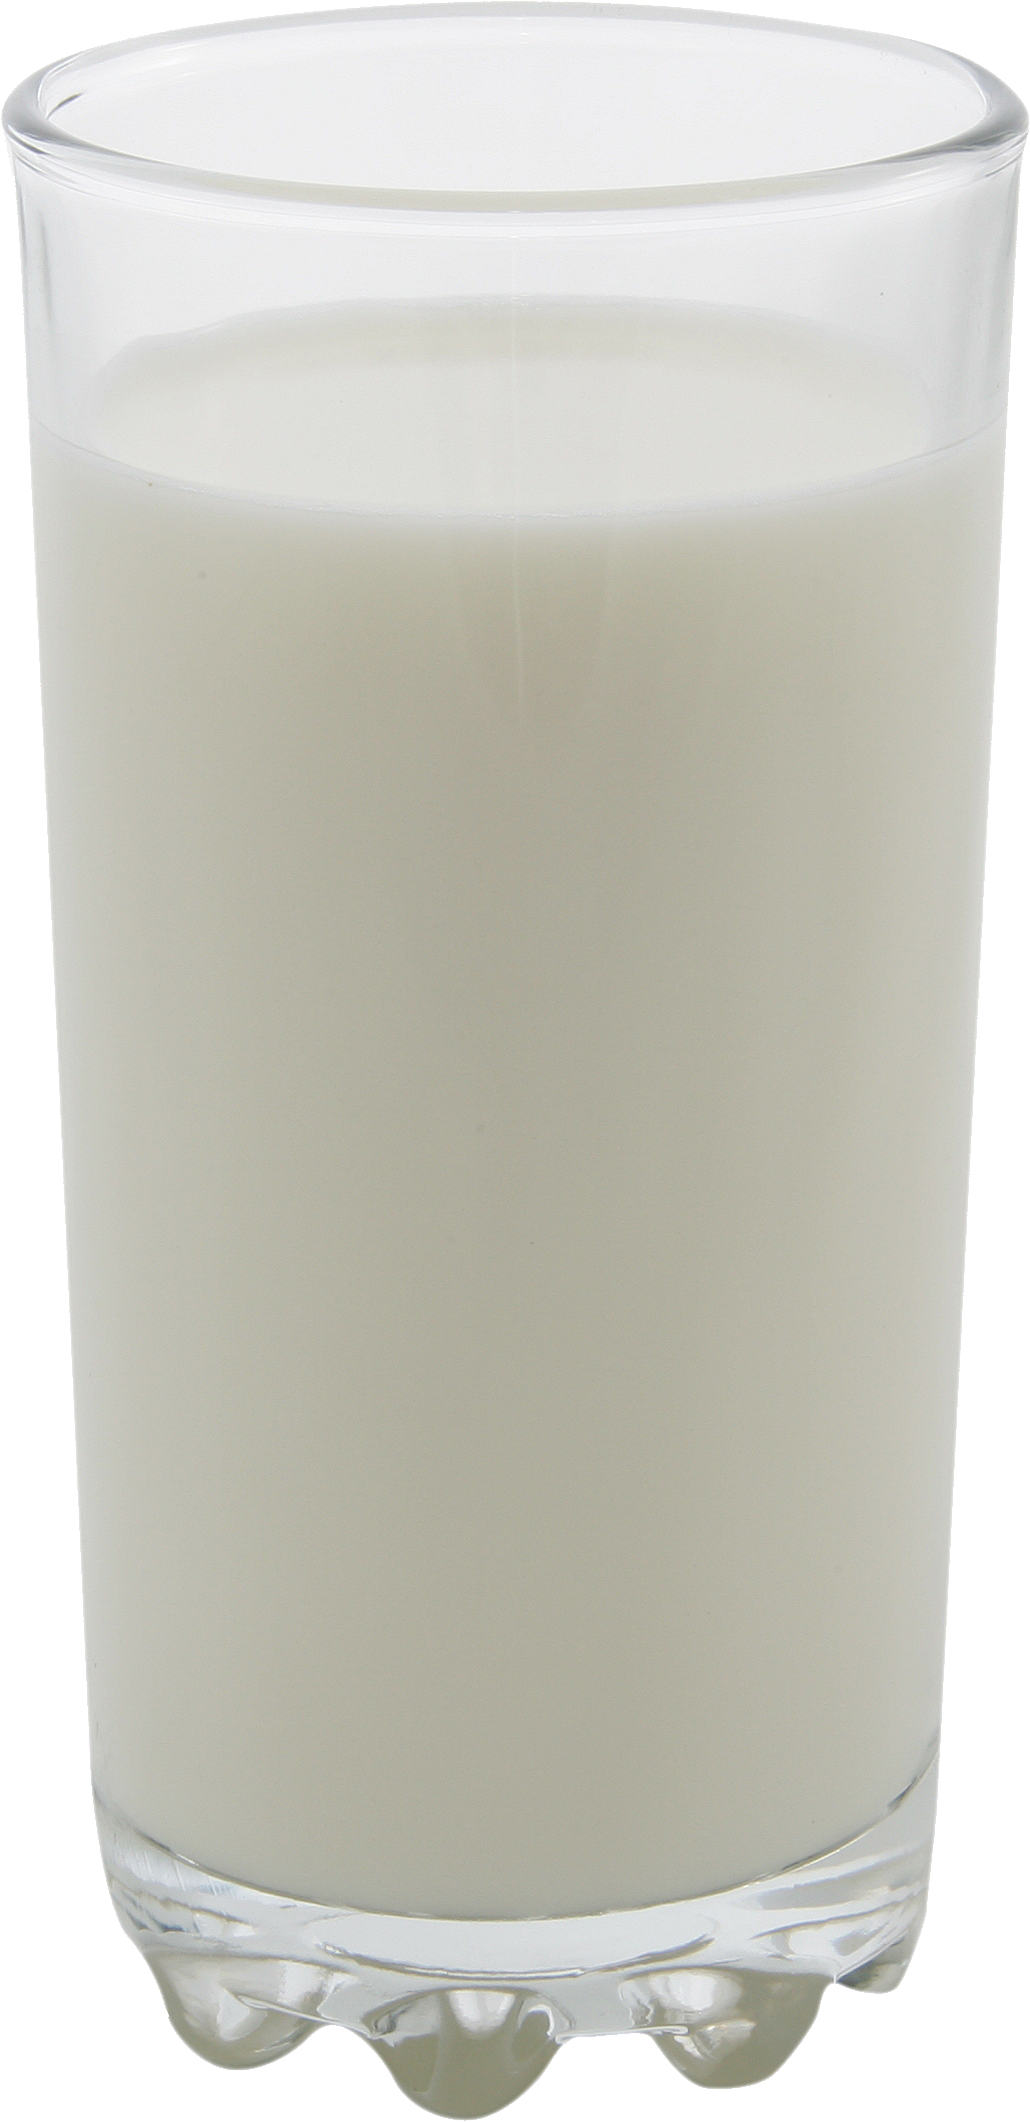 Clipart milk cup milk. Png images free download